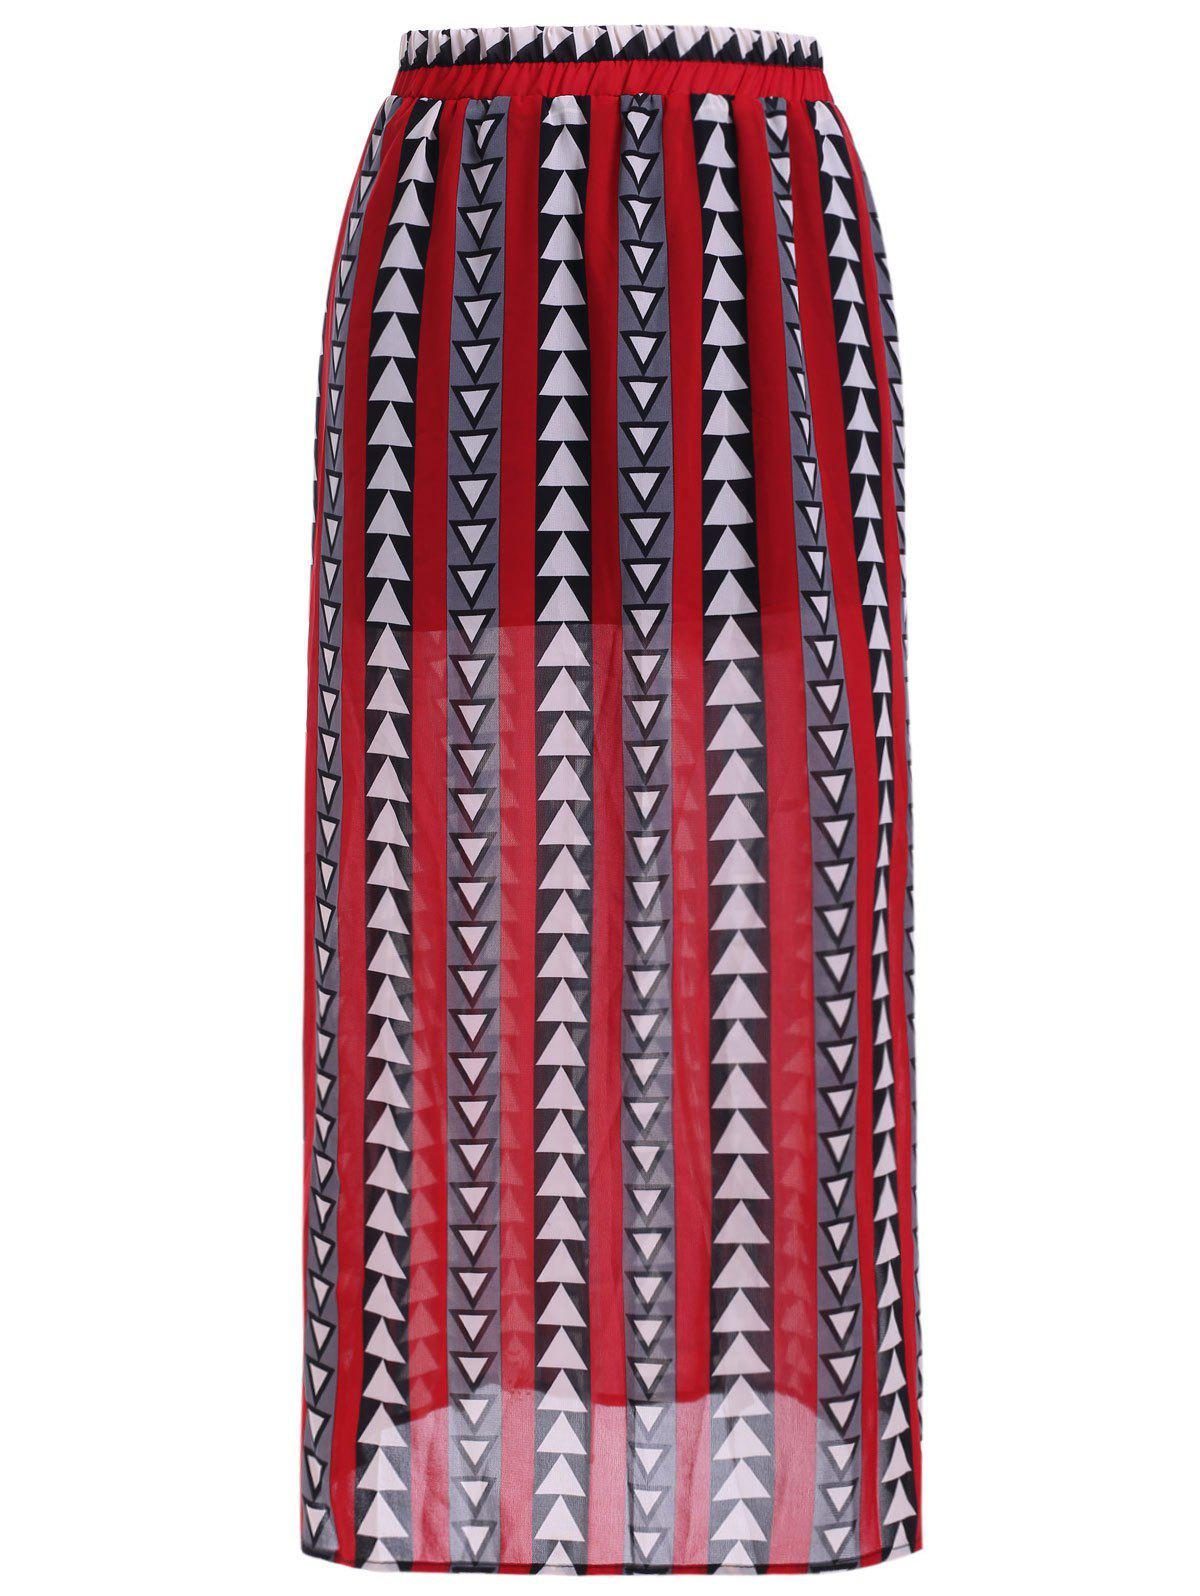 Simple Women's Geometric Print Split Chiffon Mid-Calf Skirt - RED ONE SIZE(FIT SIZE XS TO M)